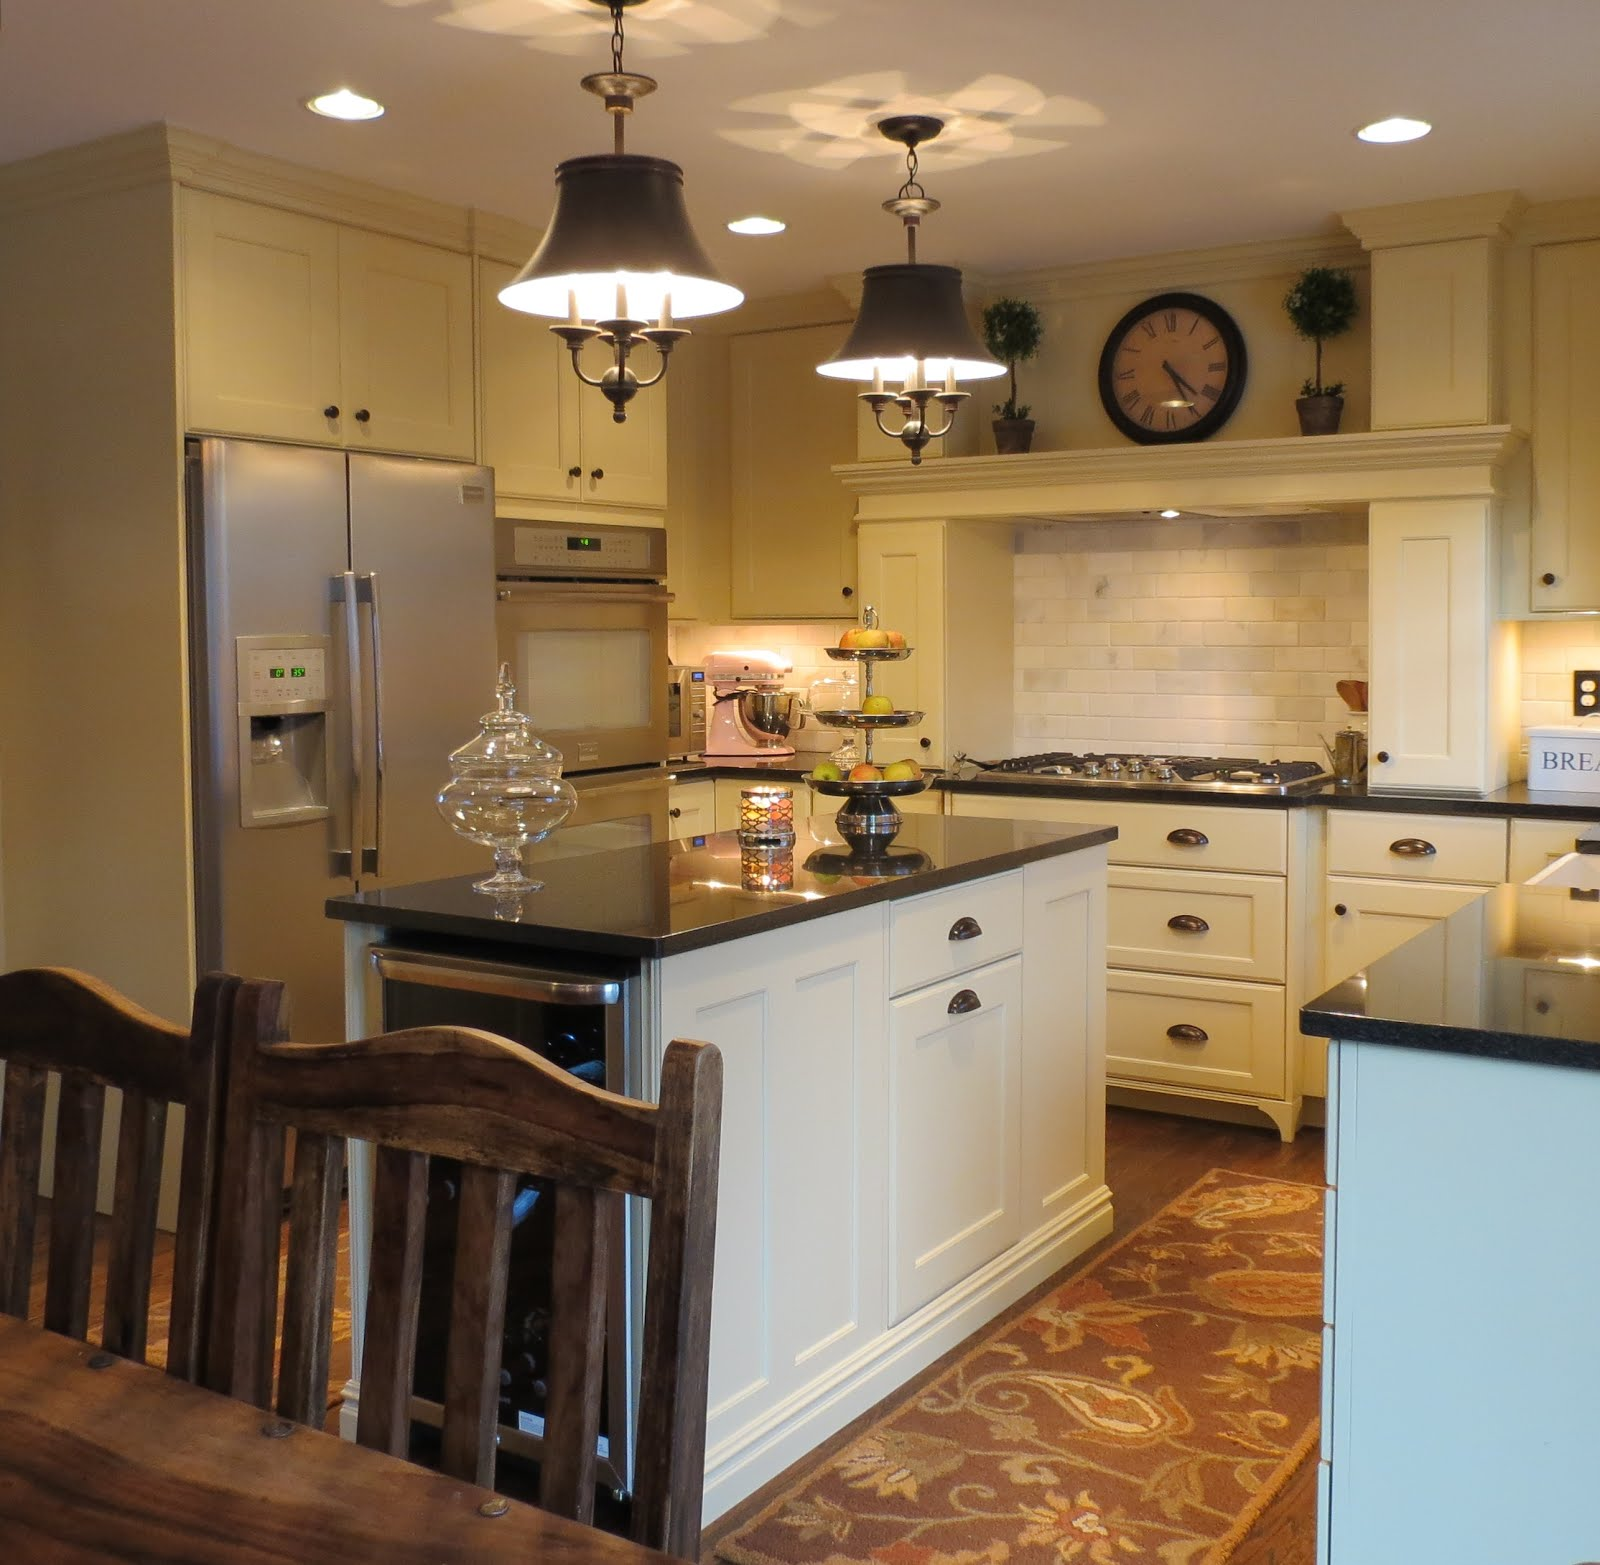 Kc cabinetry design and renovation highlands ranch remodel for Ranch style kitchen cabinets